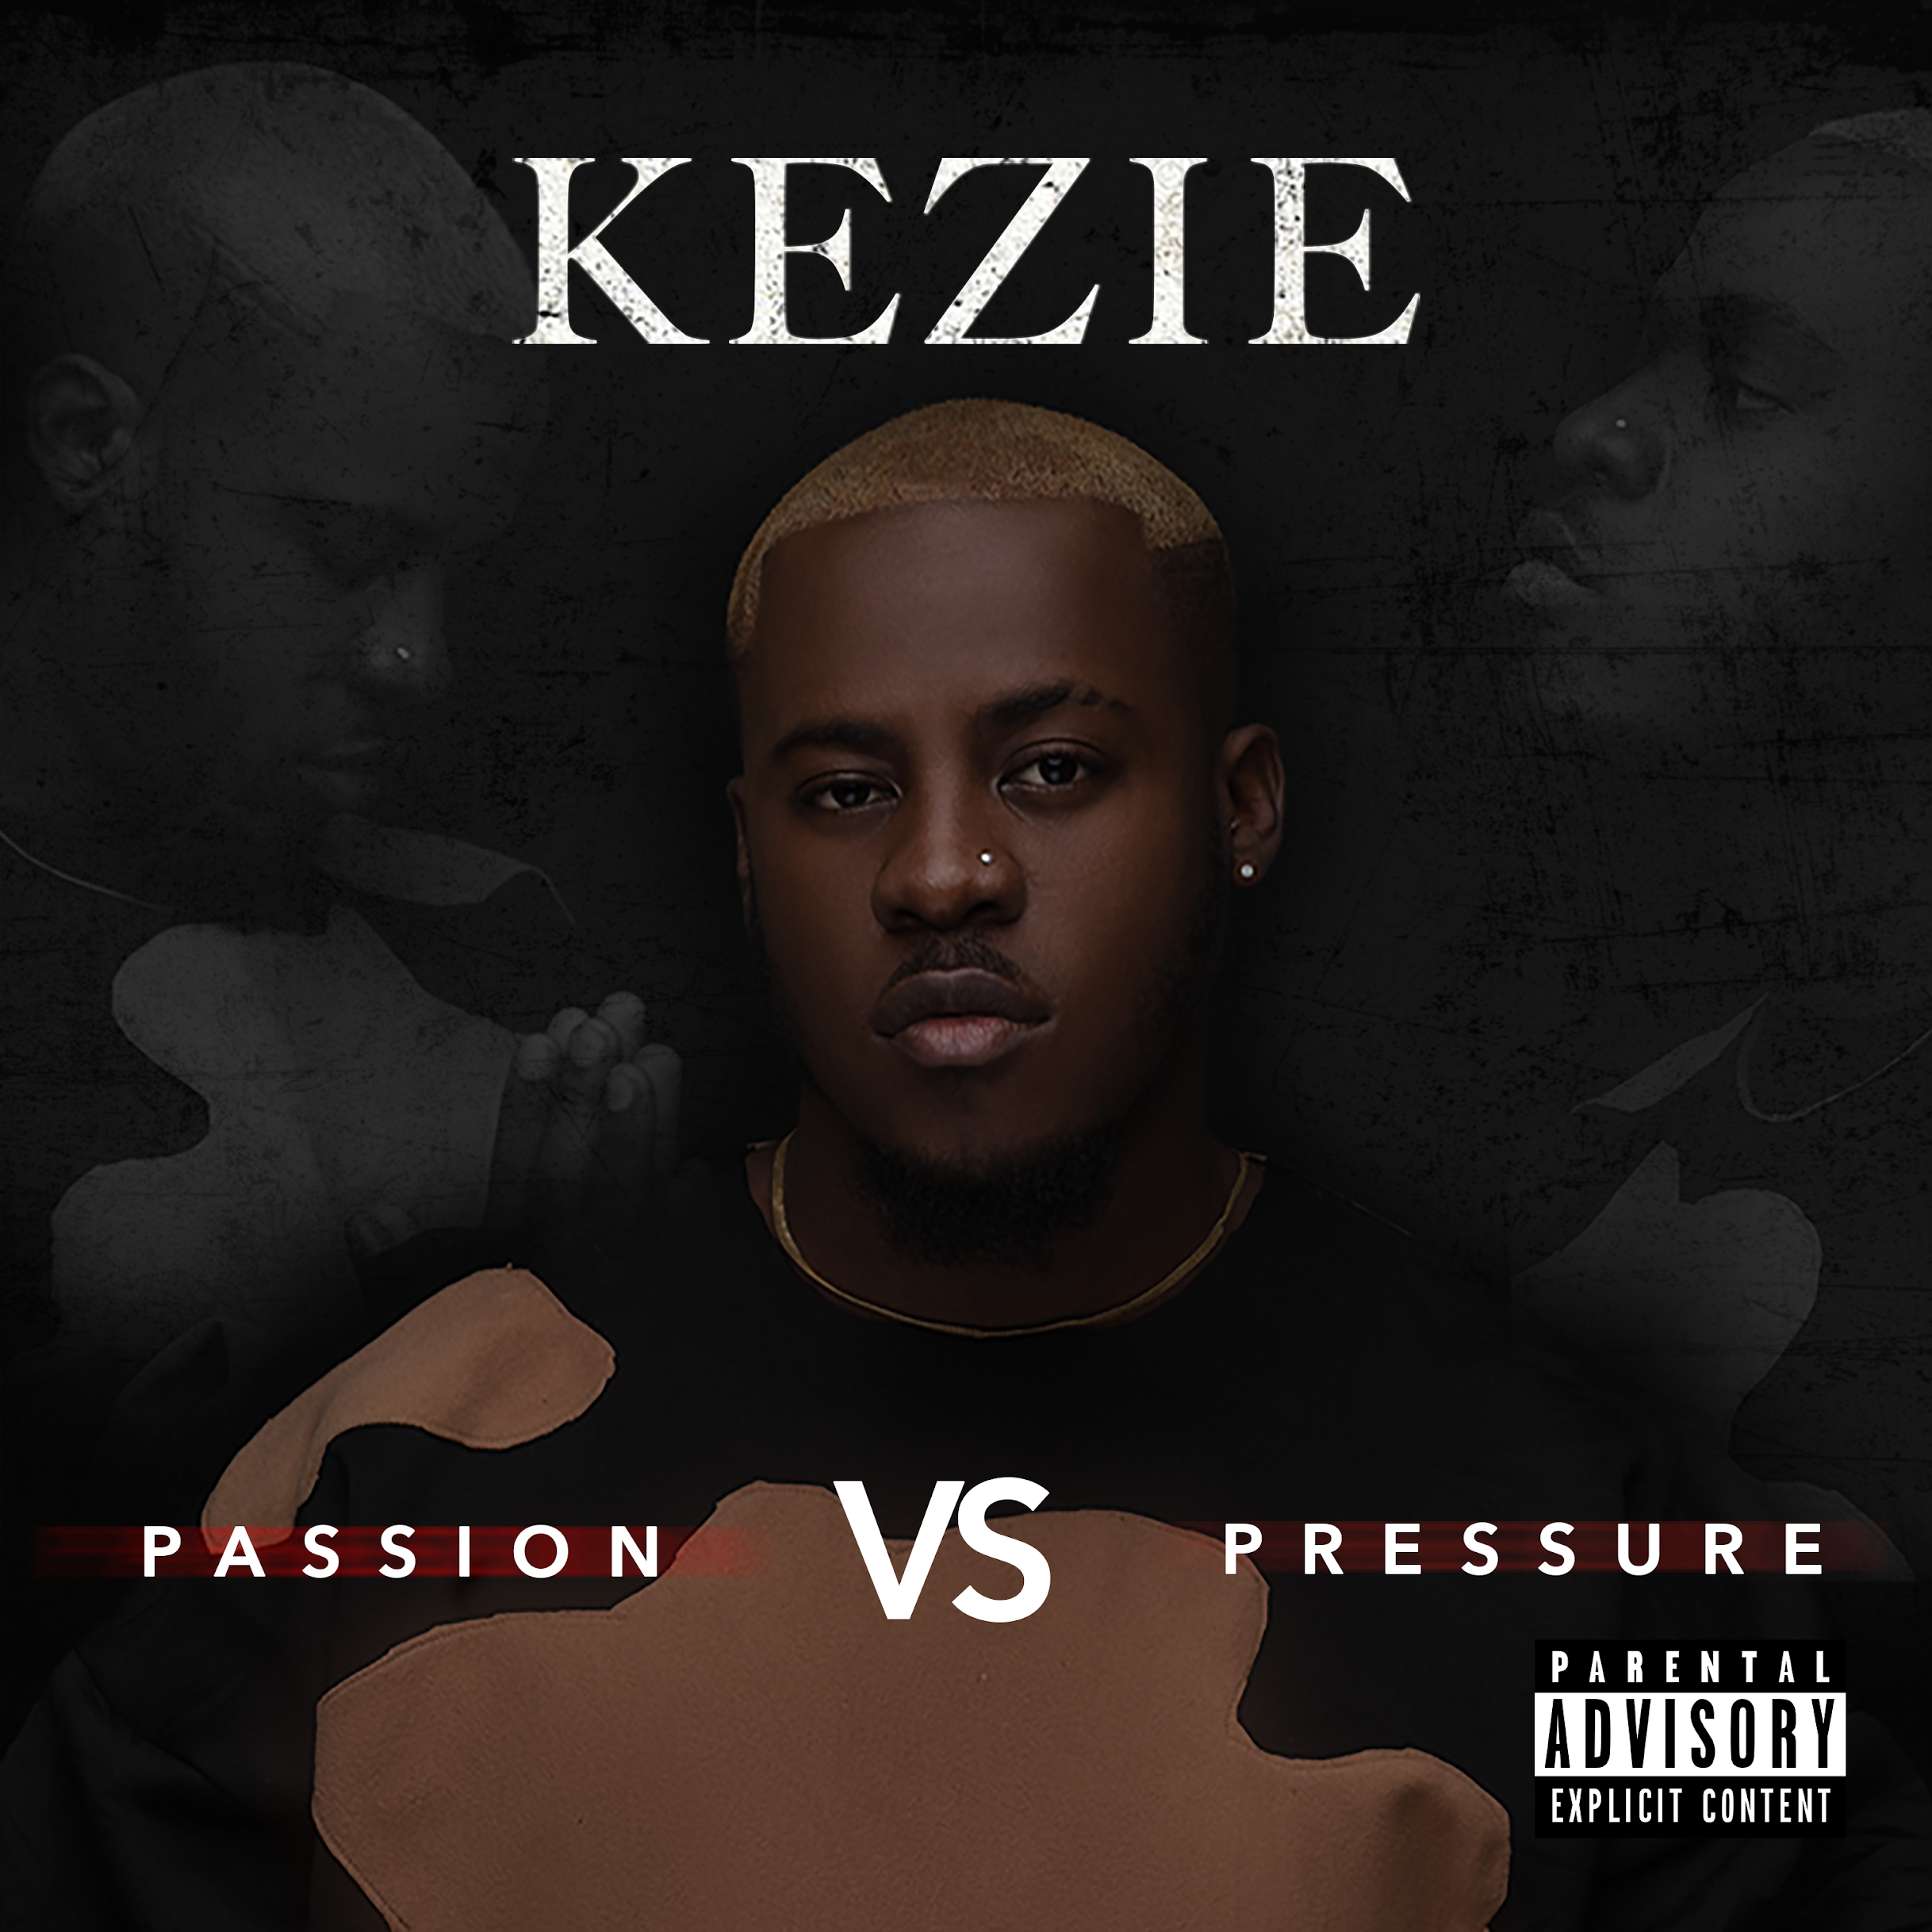 Kezie – Passion Vs Pressure